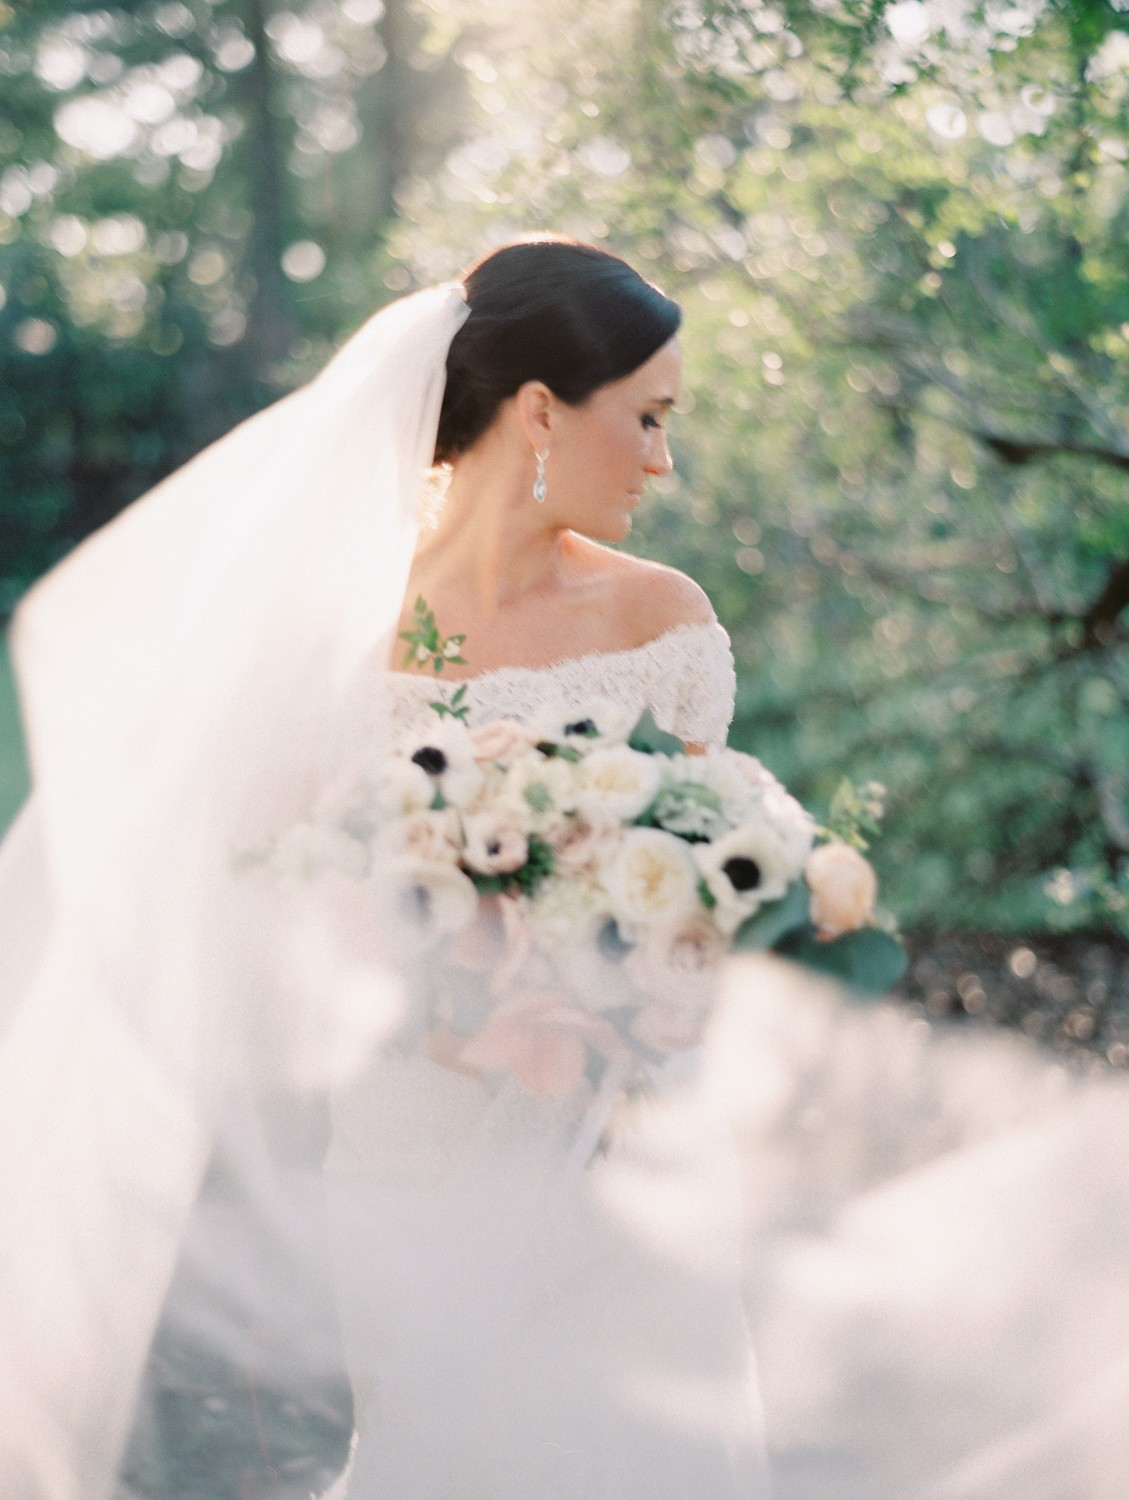 Ellen and Preston's Timeless Outdoor Wedding